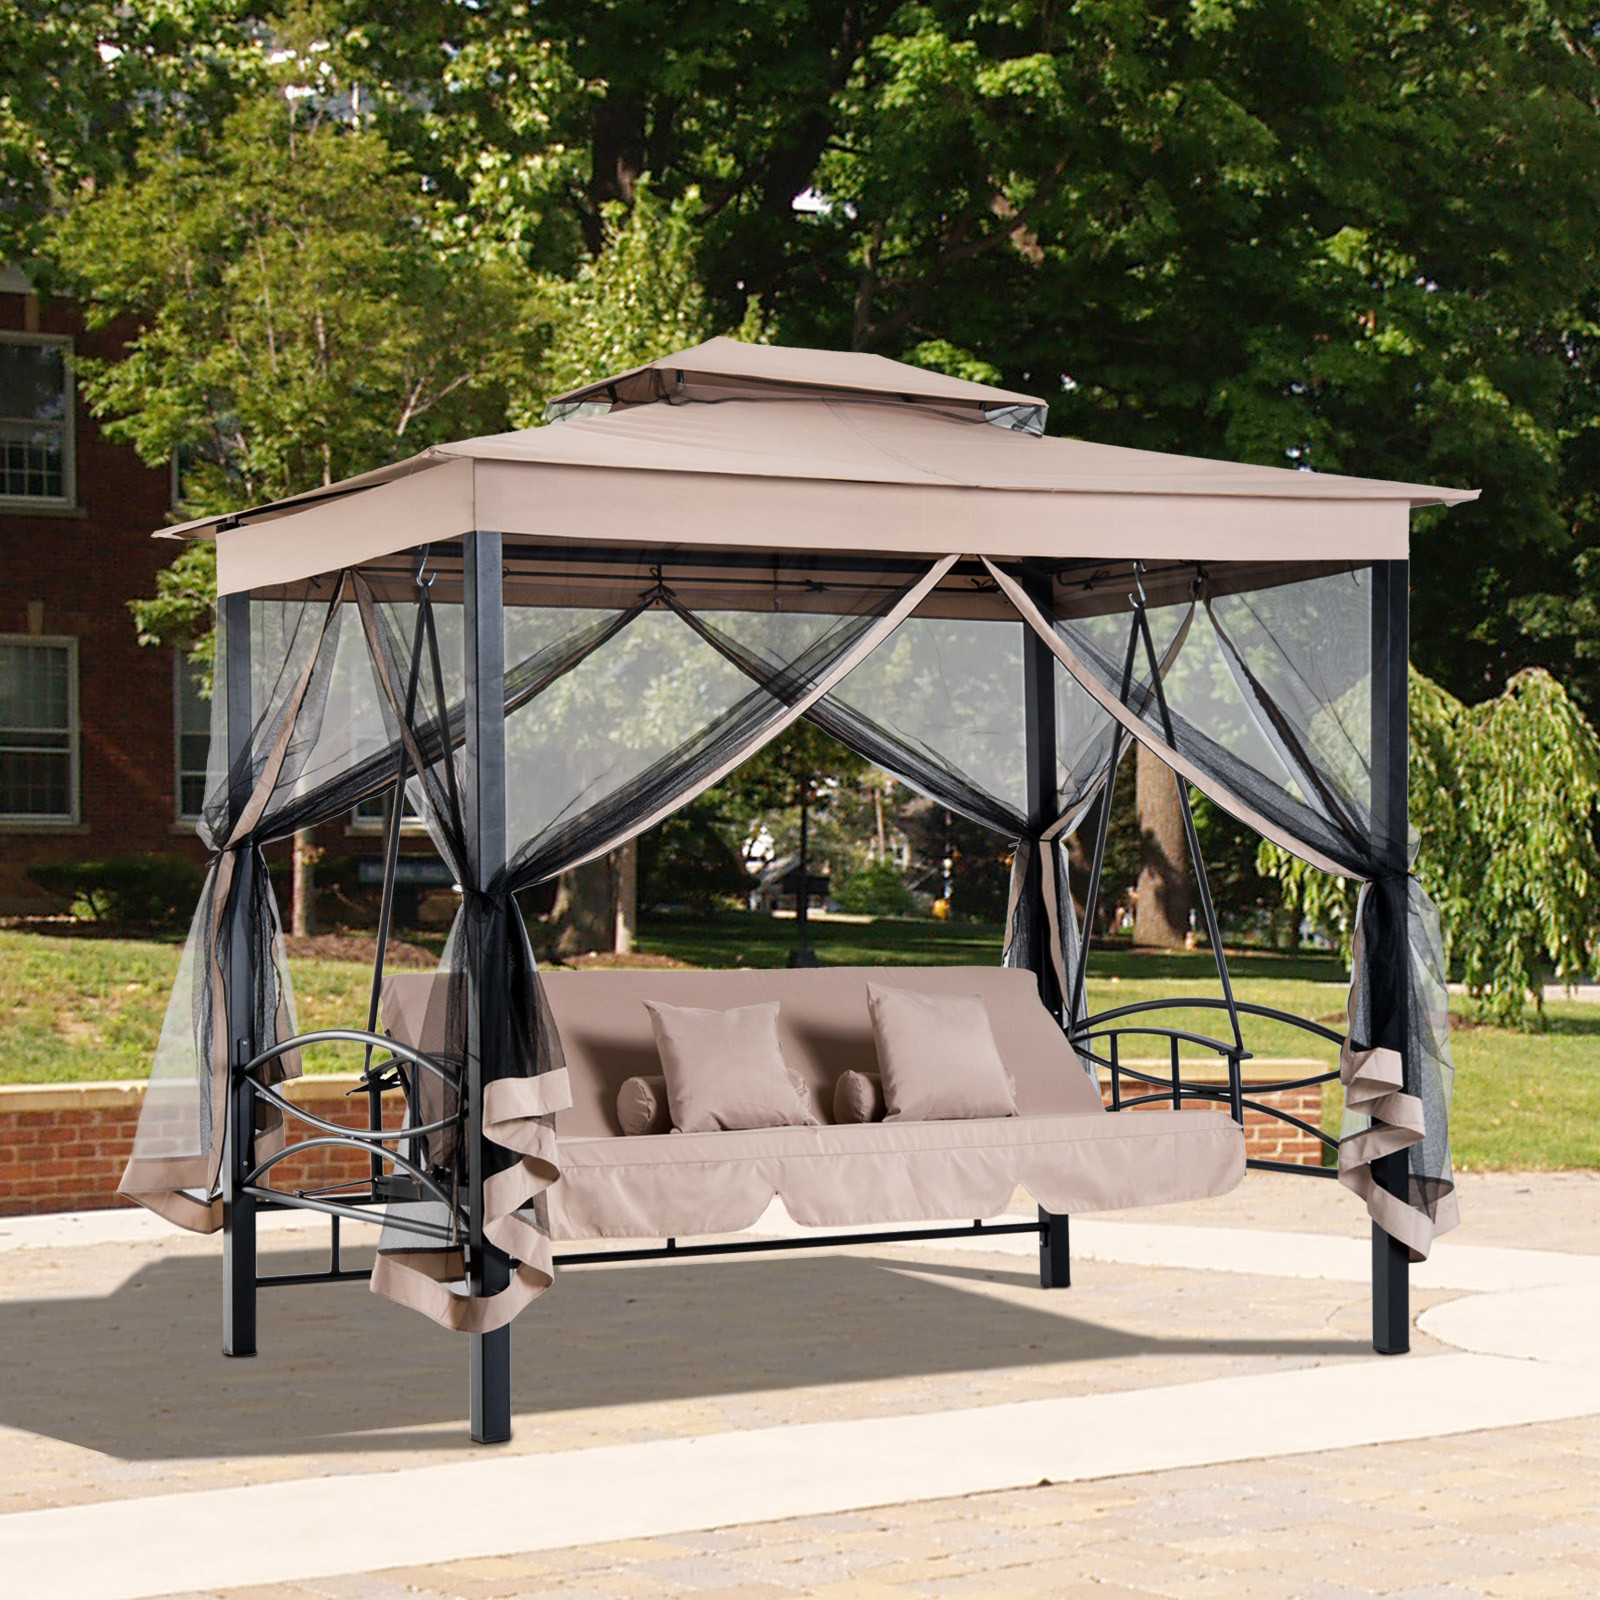 Best ideas about Patio Swing With Canopy . Save or Pin 3 in 1 Patio Swing Gazebo Canopy Daybed Hammock Canopy Now.